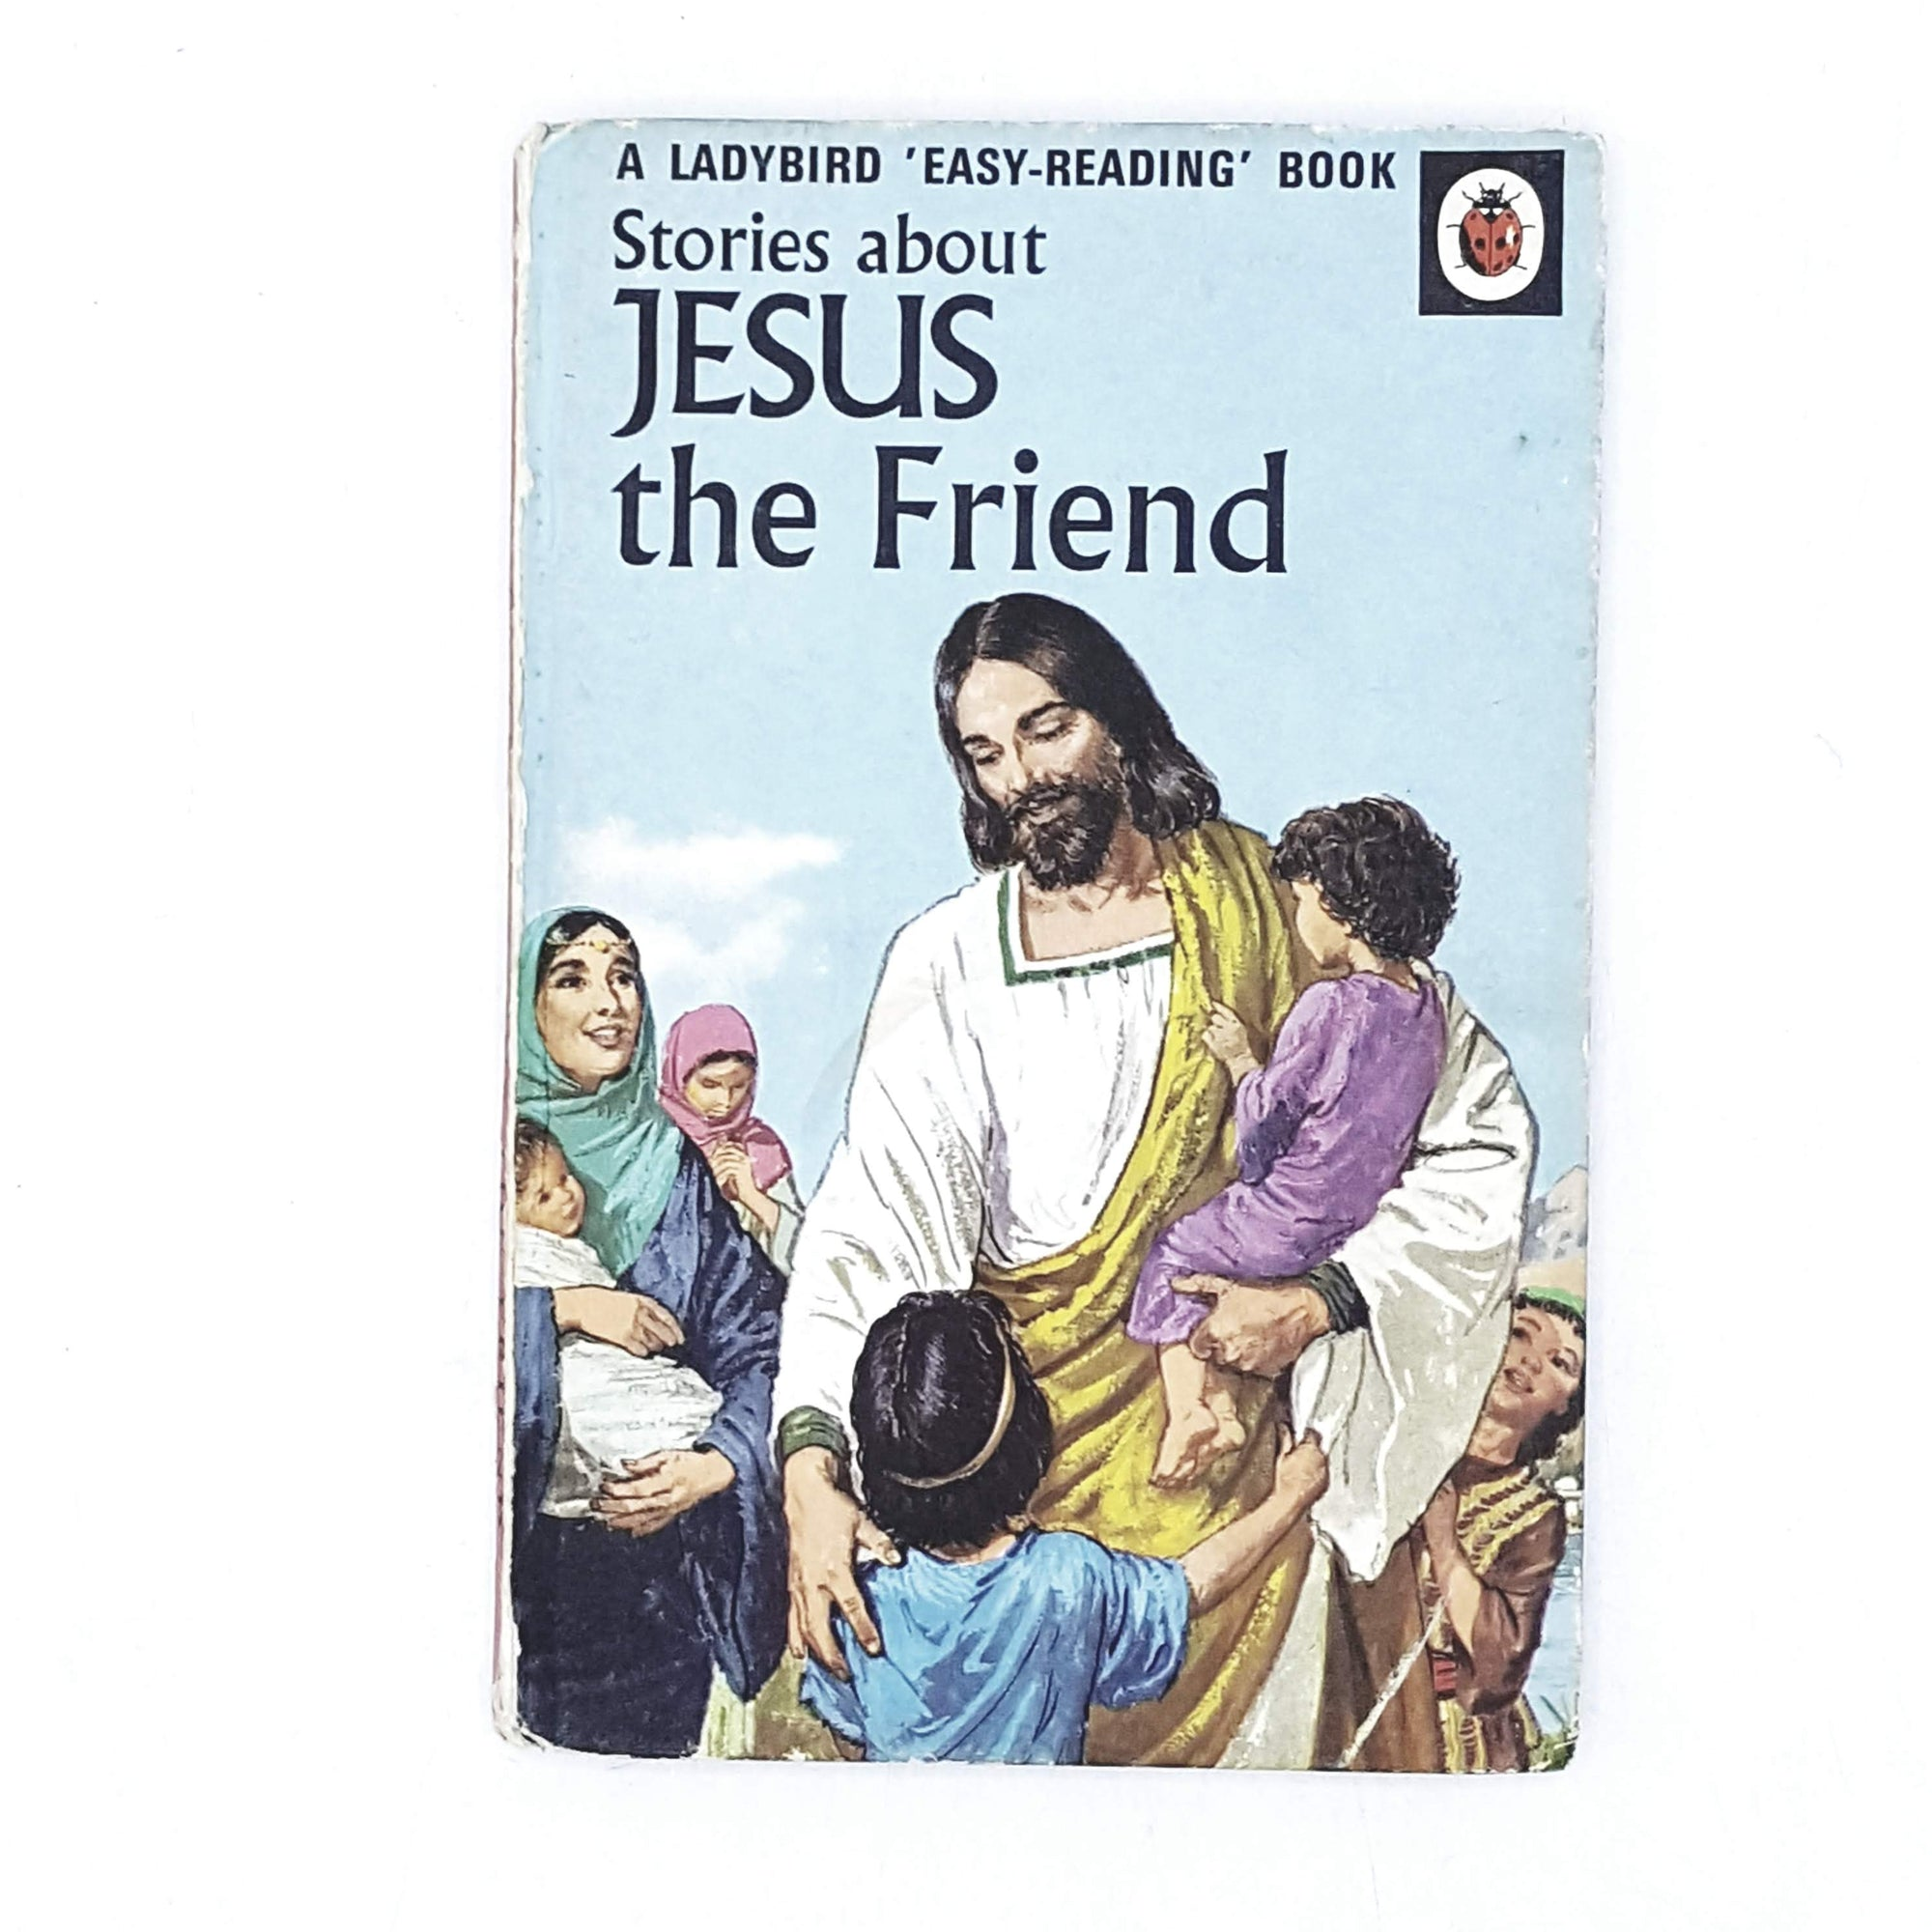 Ladybird Religion: Jesus the Friend 1961